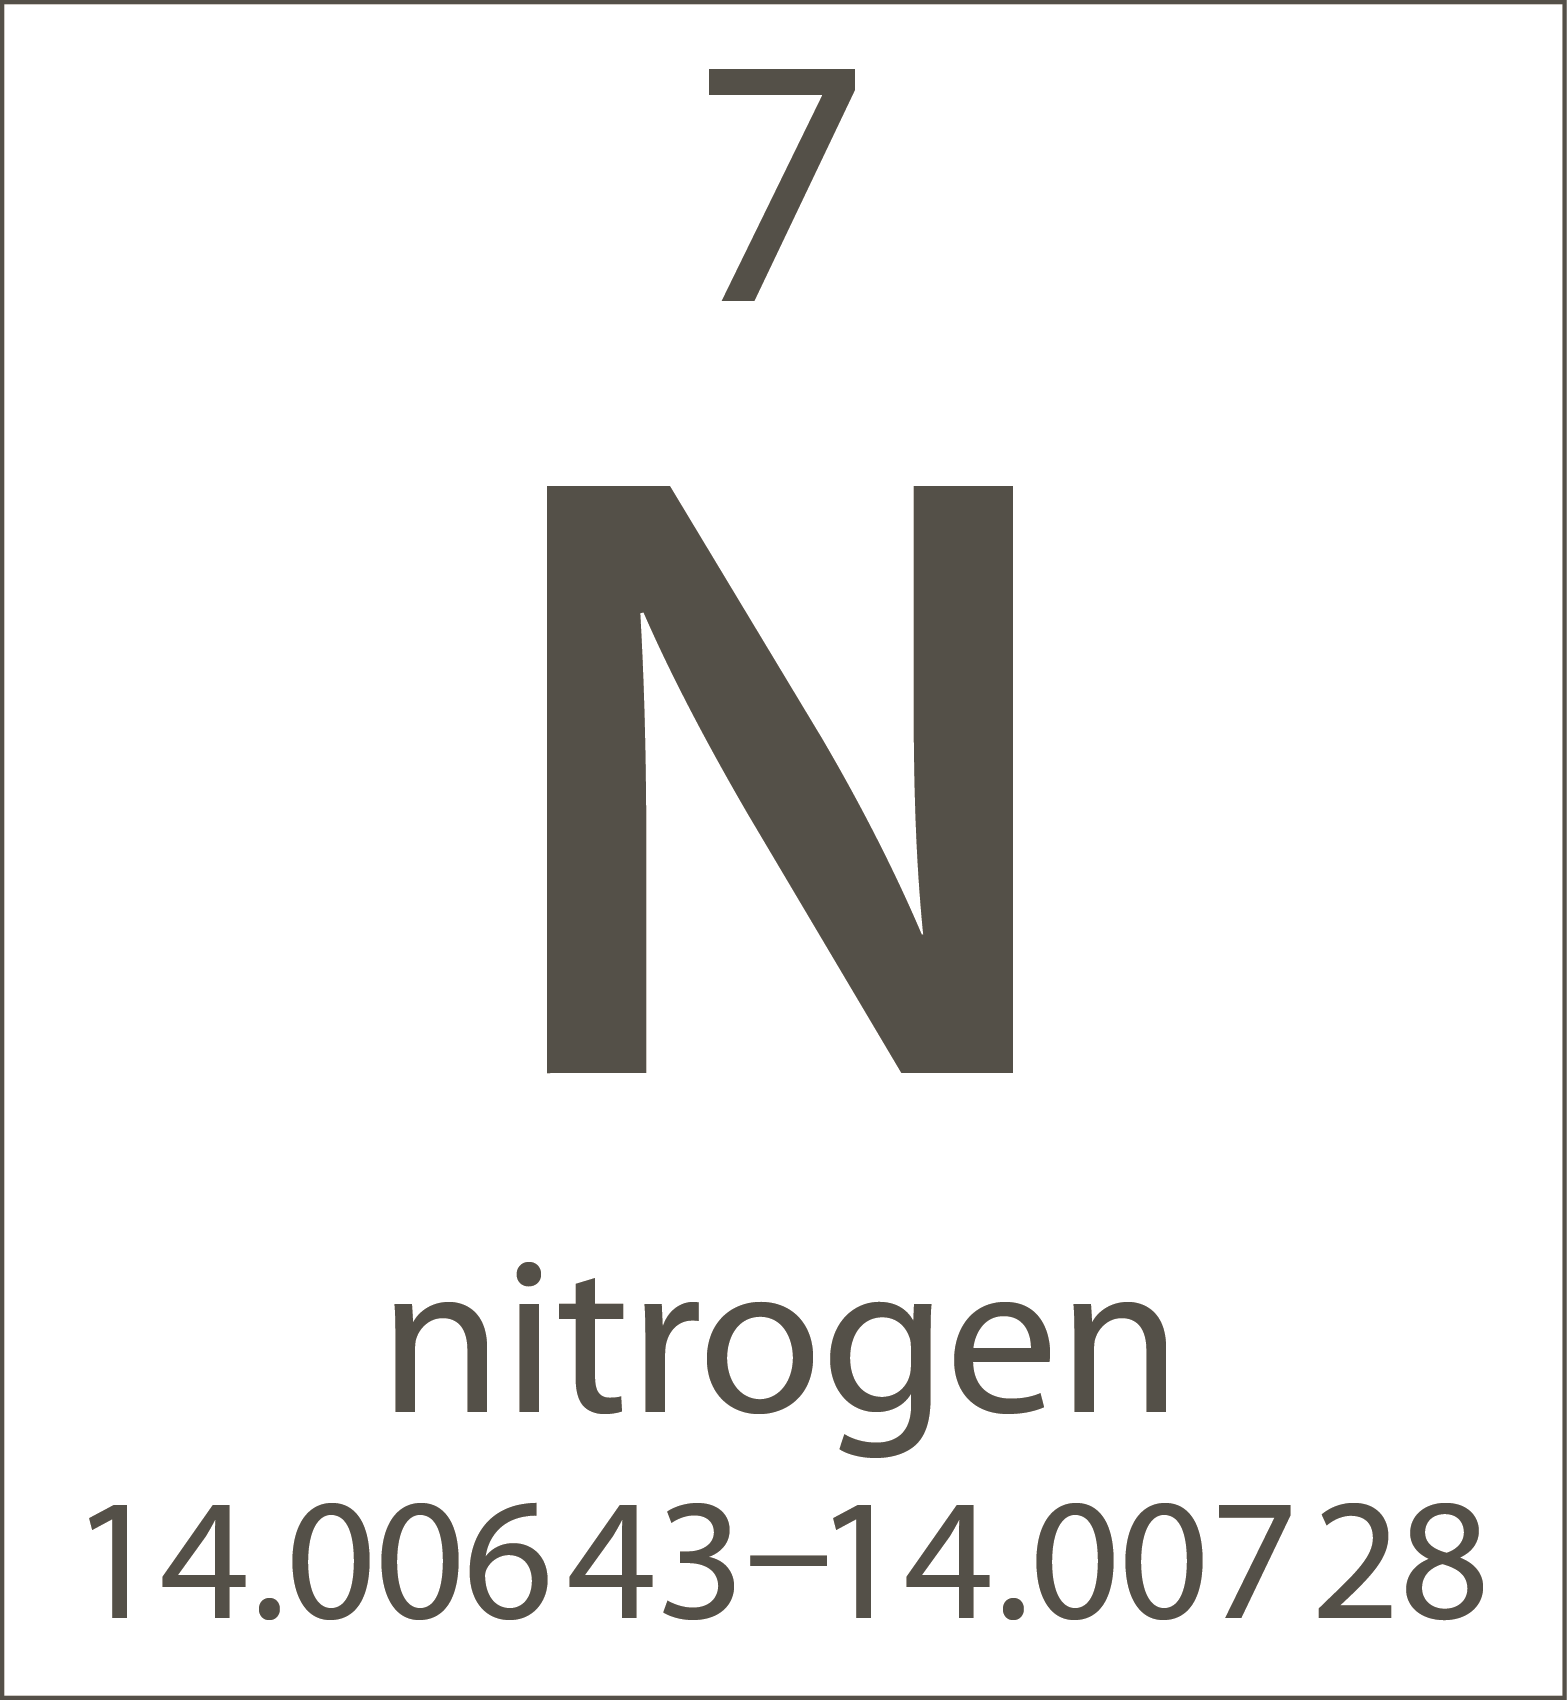 a trademark double entendre n2 versus into wines on reserve a 3 nitrogen periodic table of